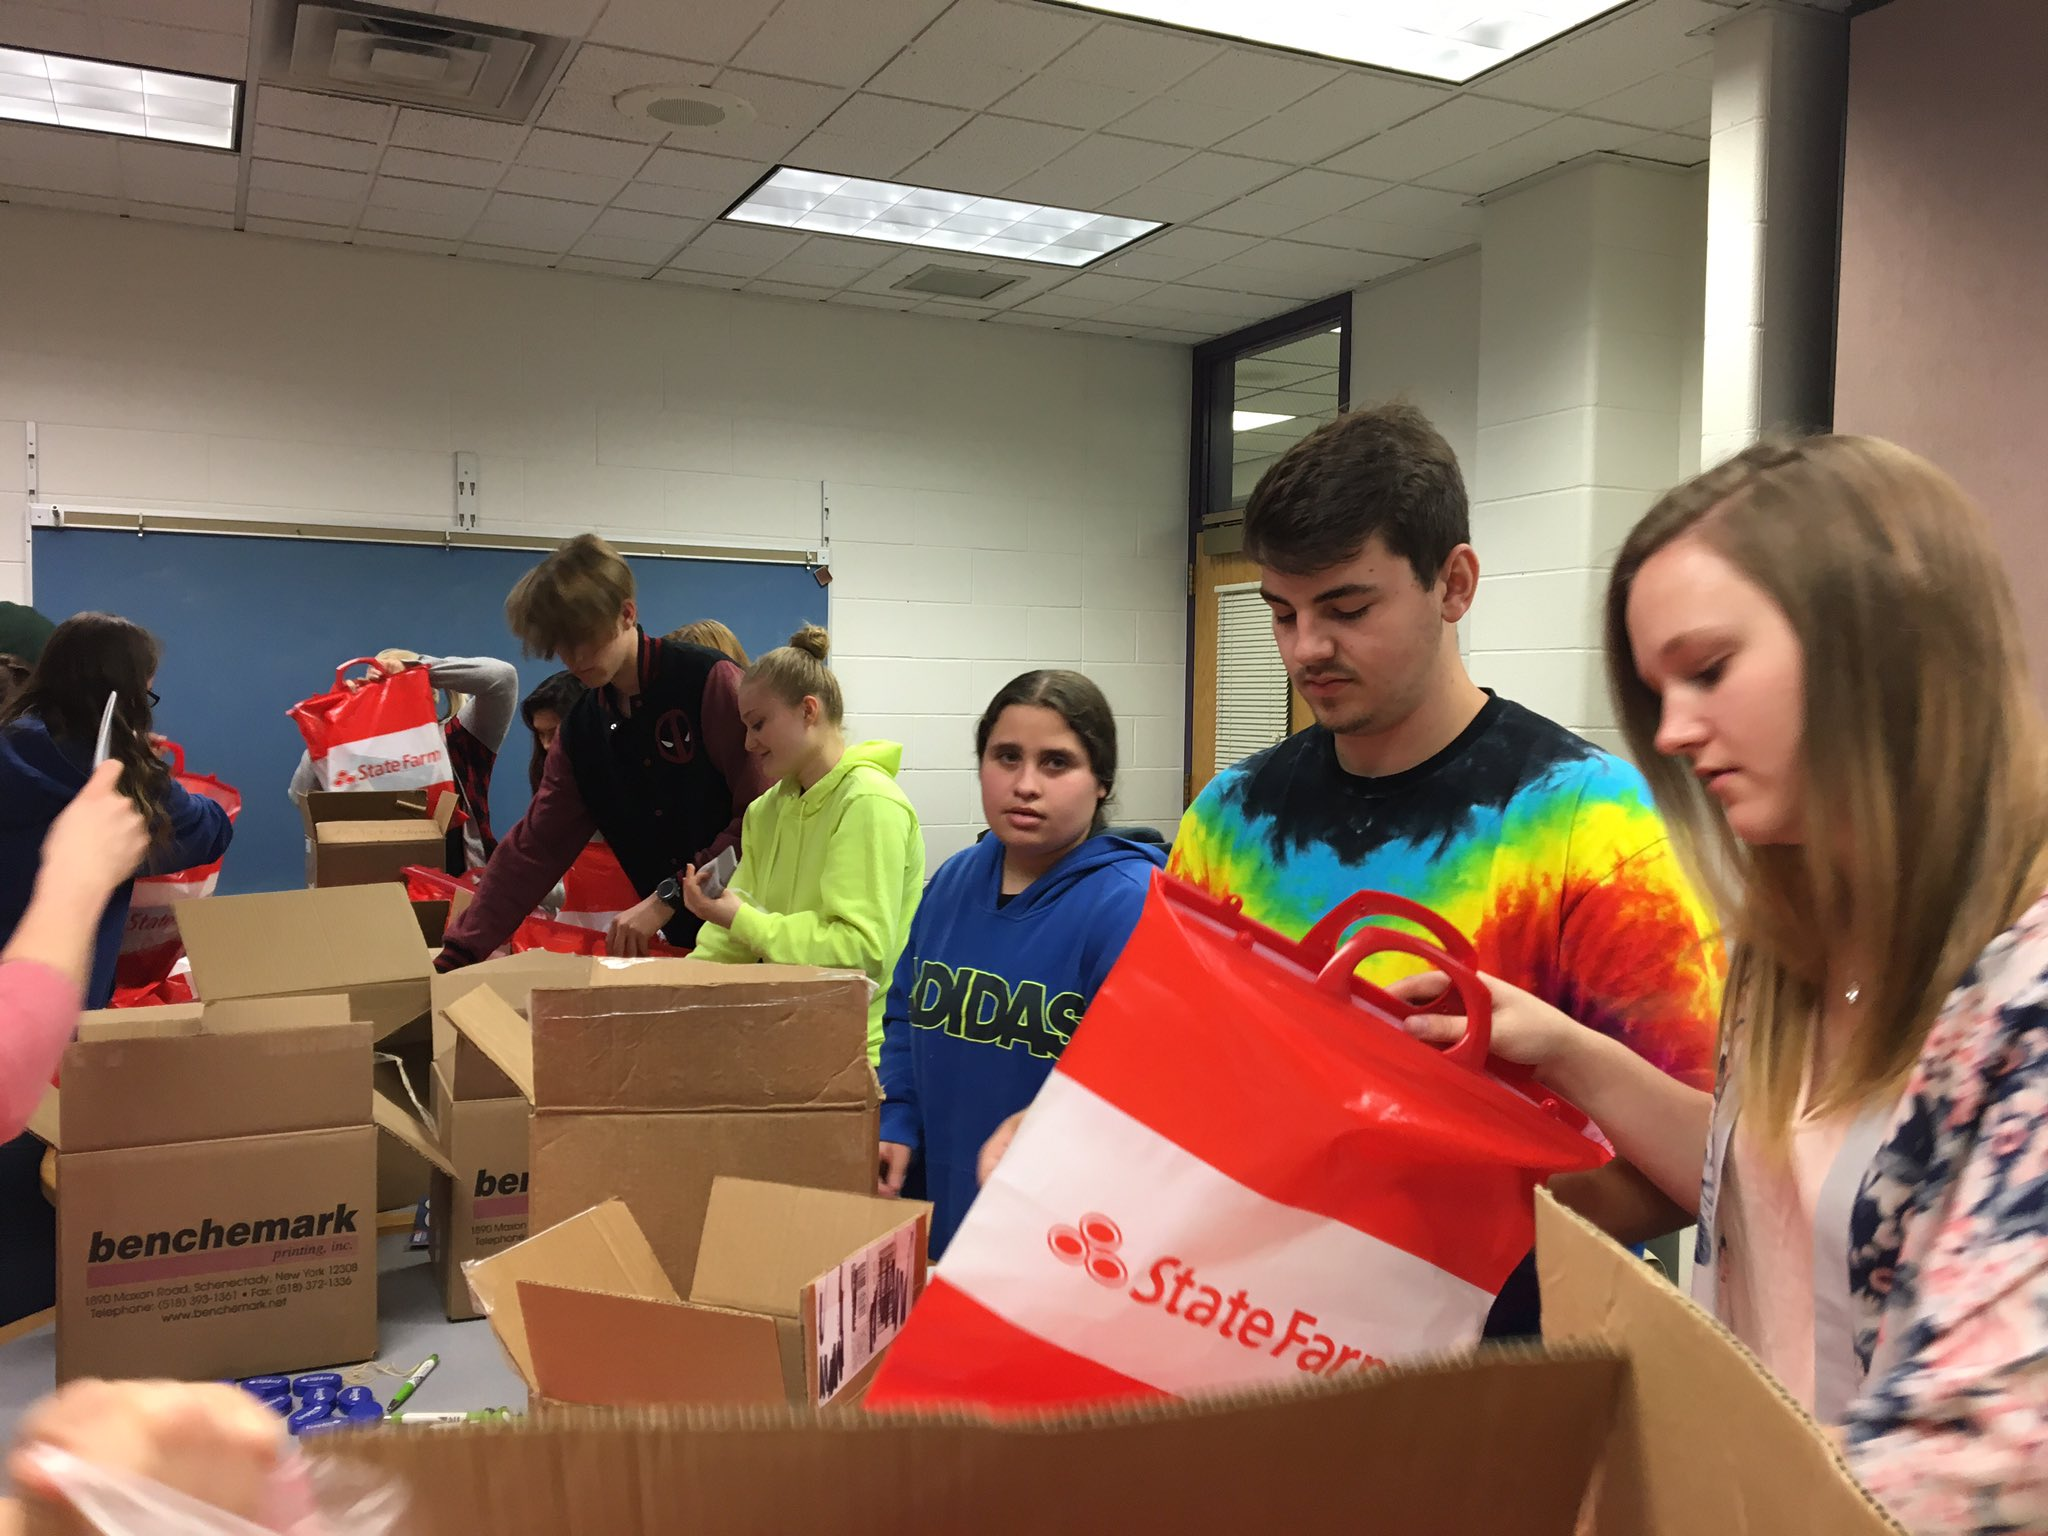 @BSPAHS students putting together goodie bags for the #Scotties5k. Thank you @StateFarm for supplying the bags! https://t.co/CniVQBuALE